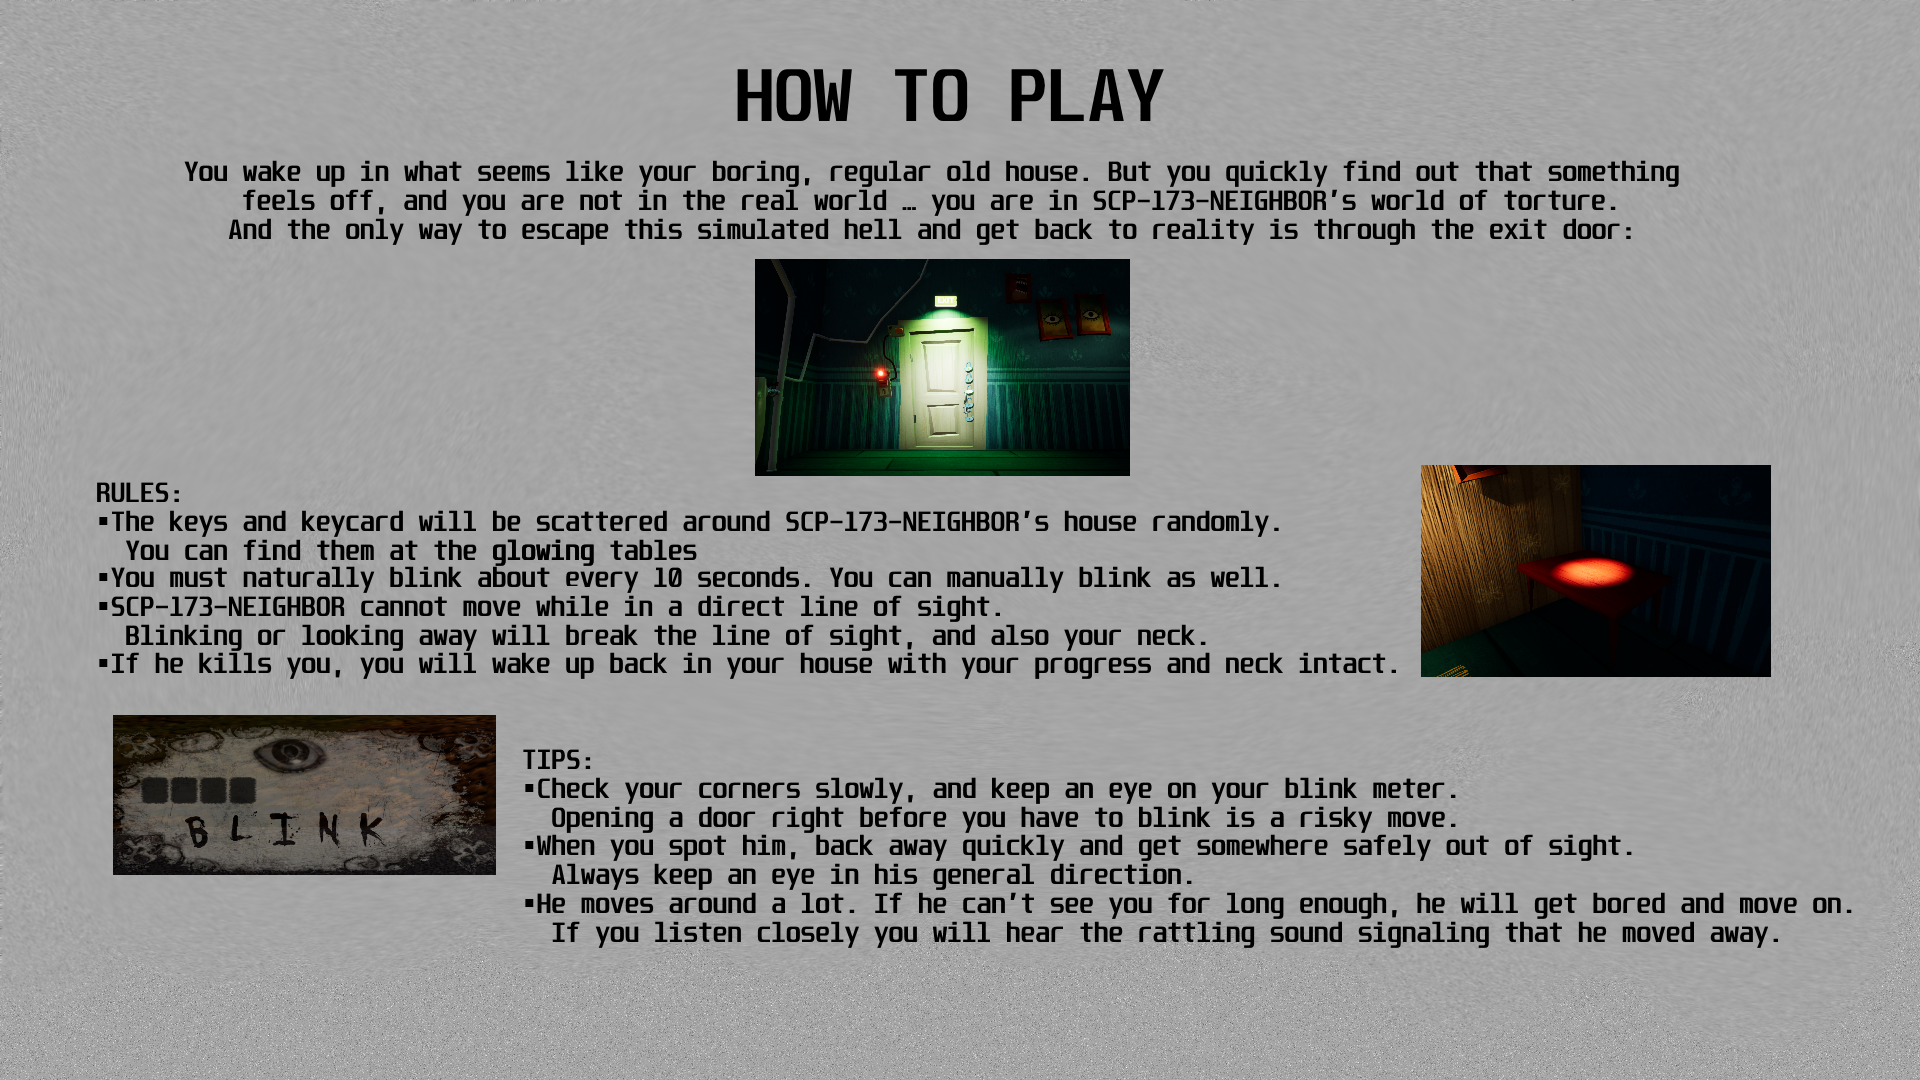 How to play screen